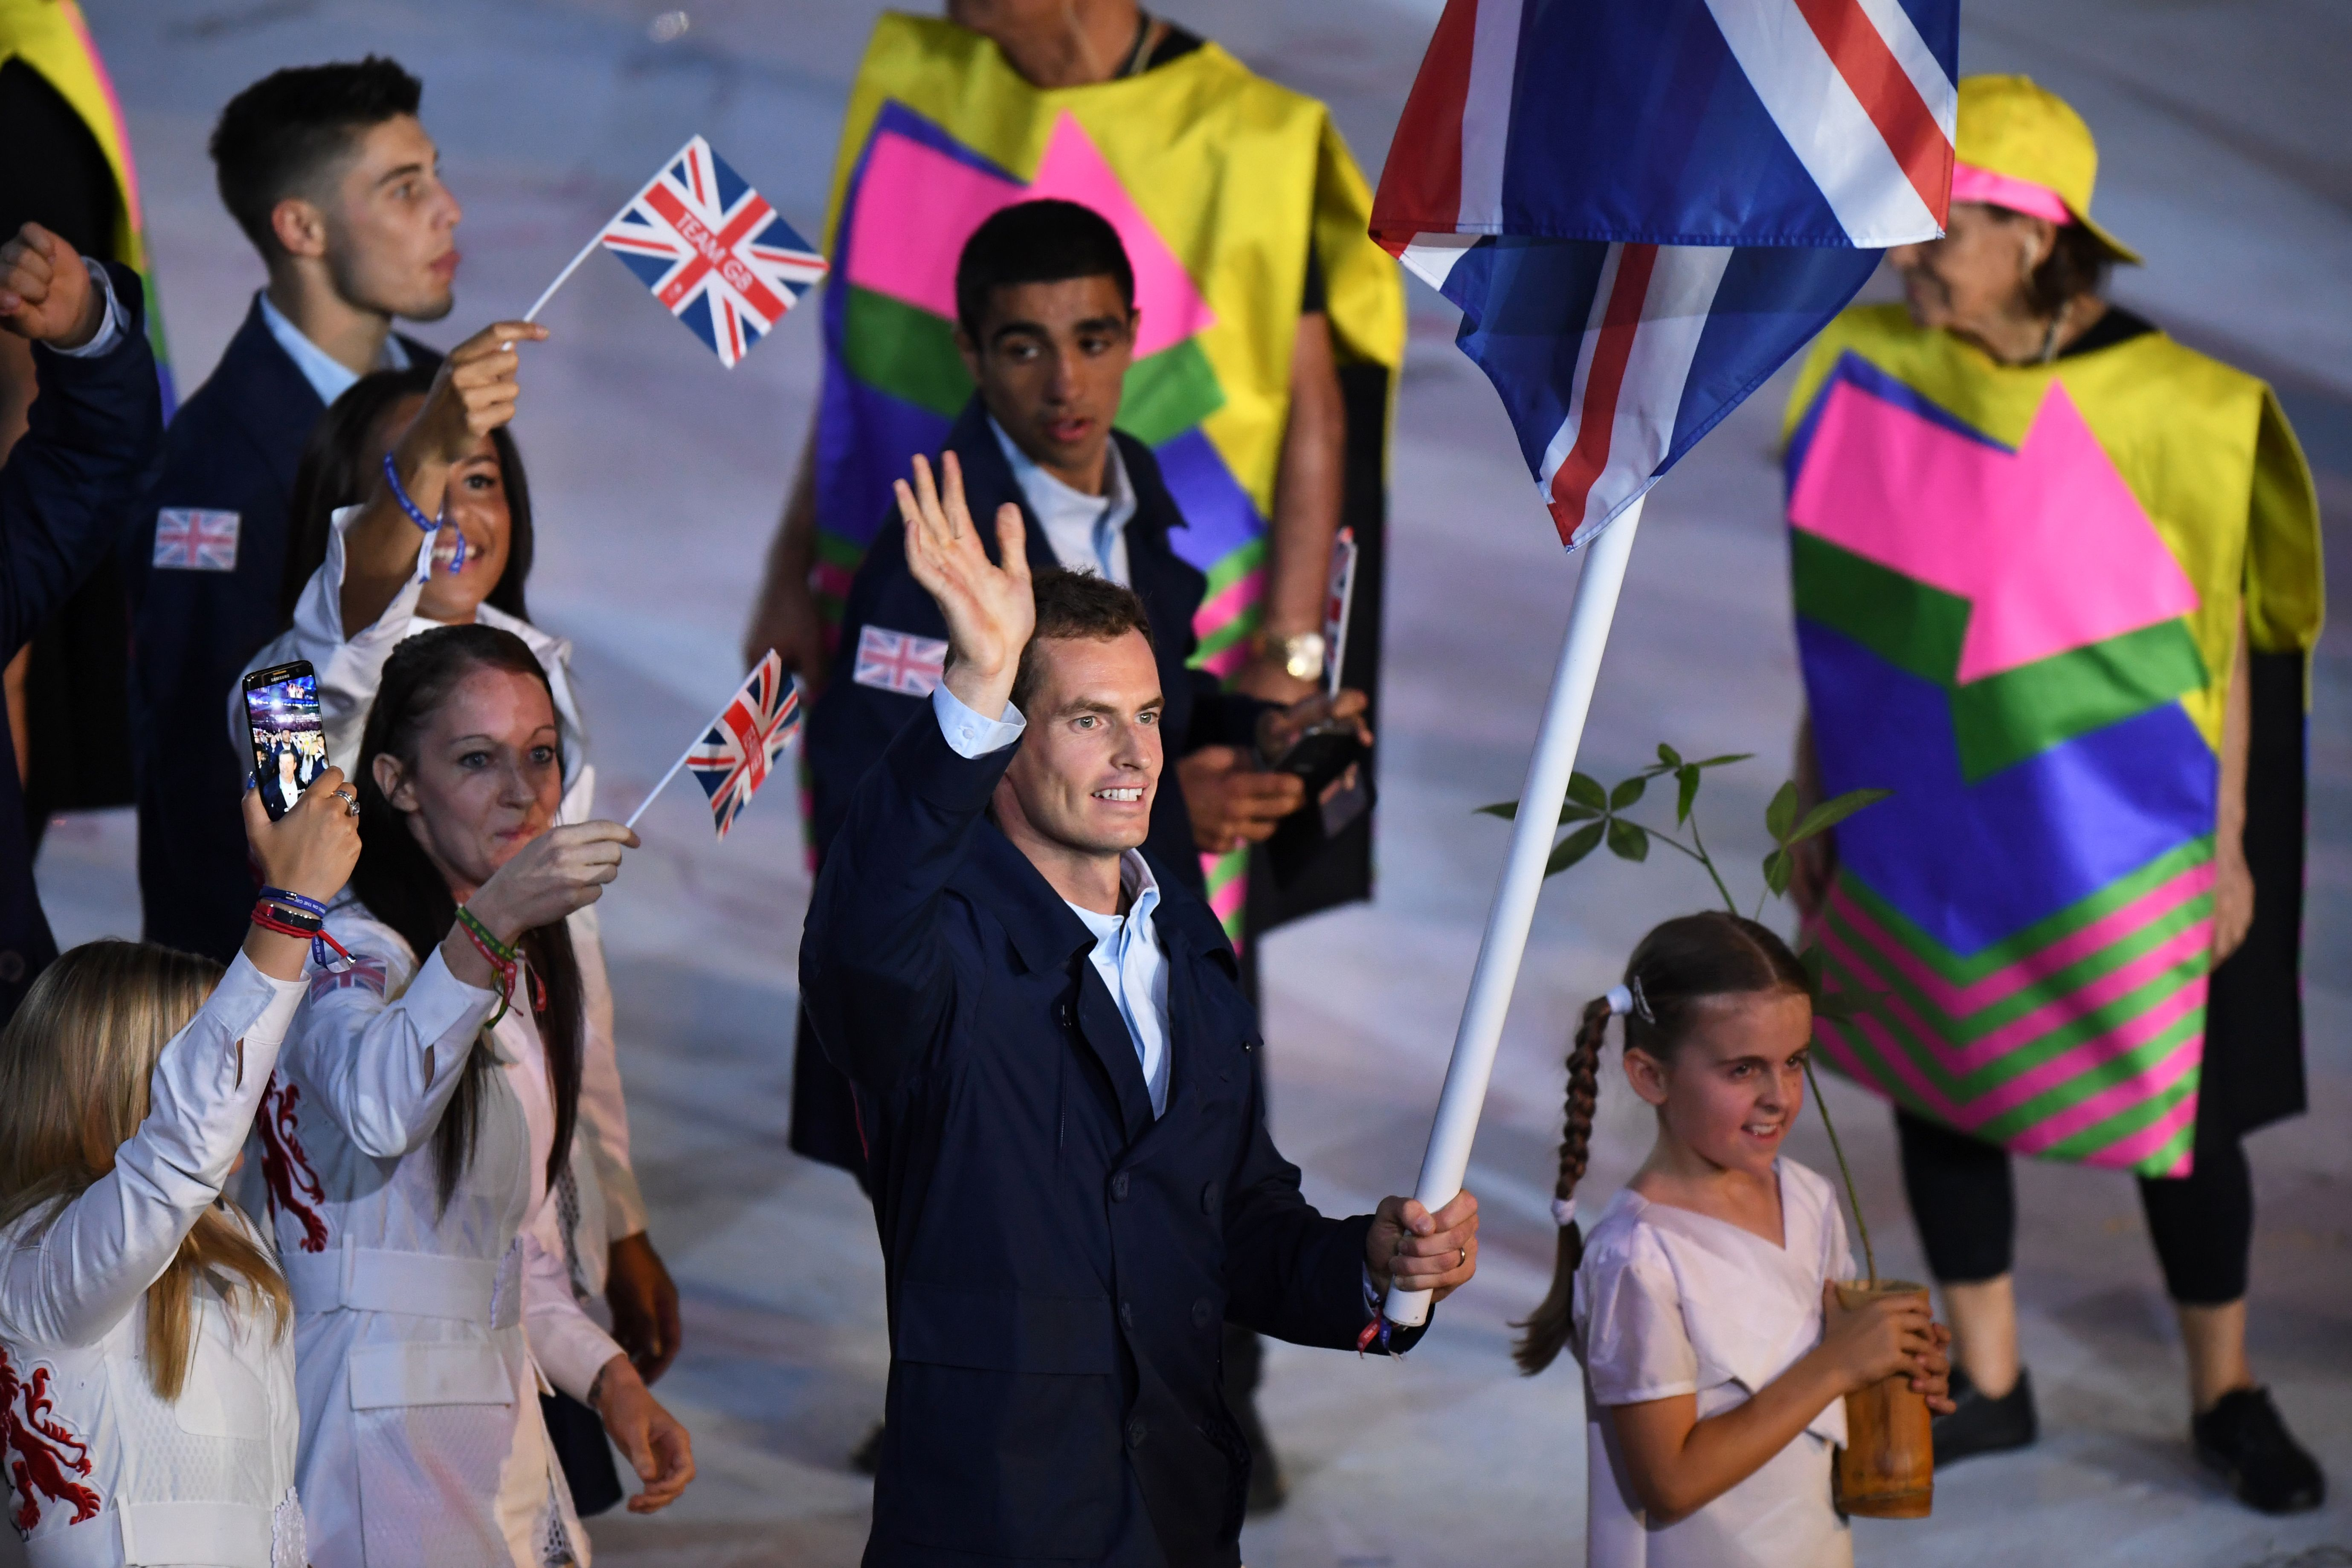 Andy Murray wins again after holding Union Flag with one hand when leading out Team GB at Rio Olympics